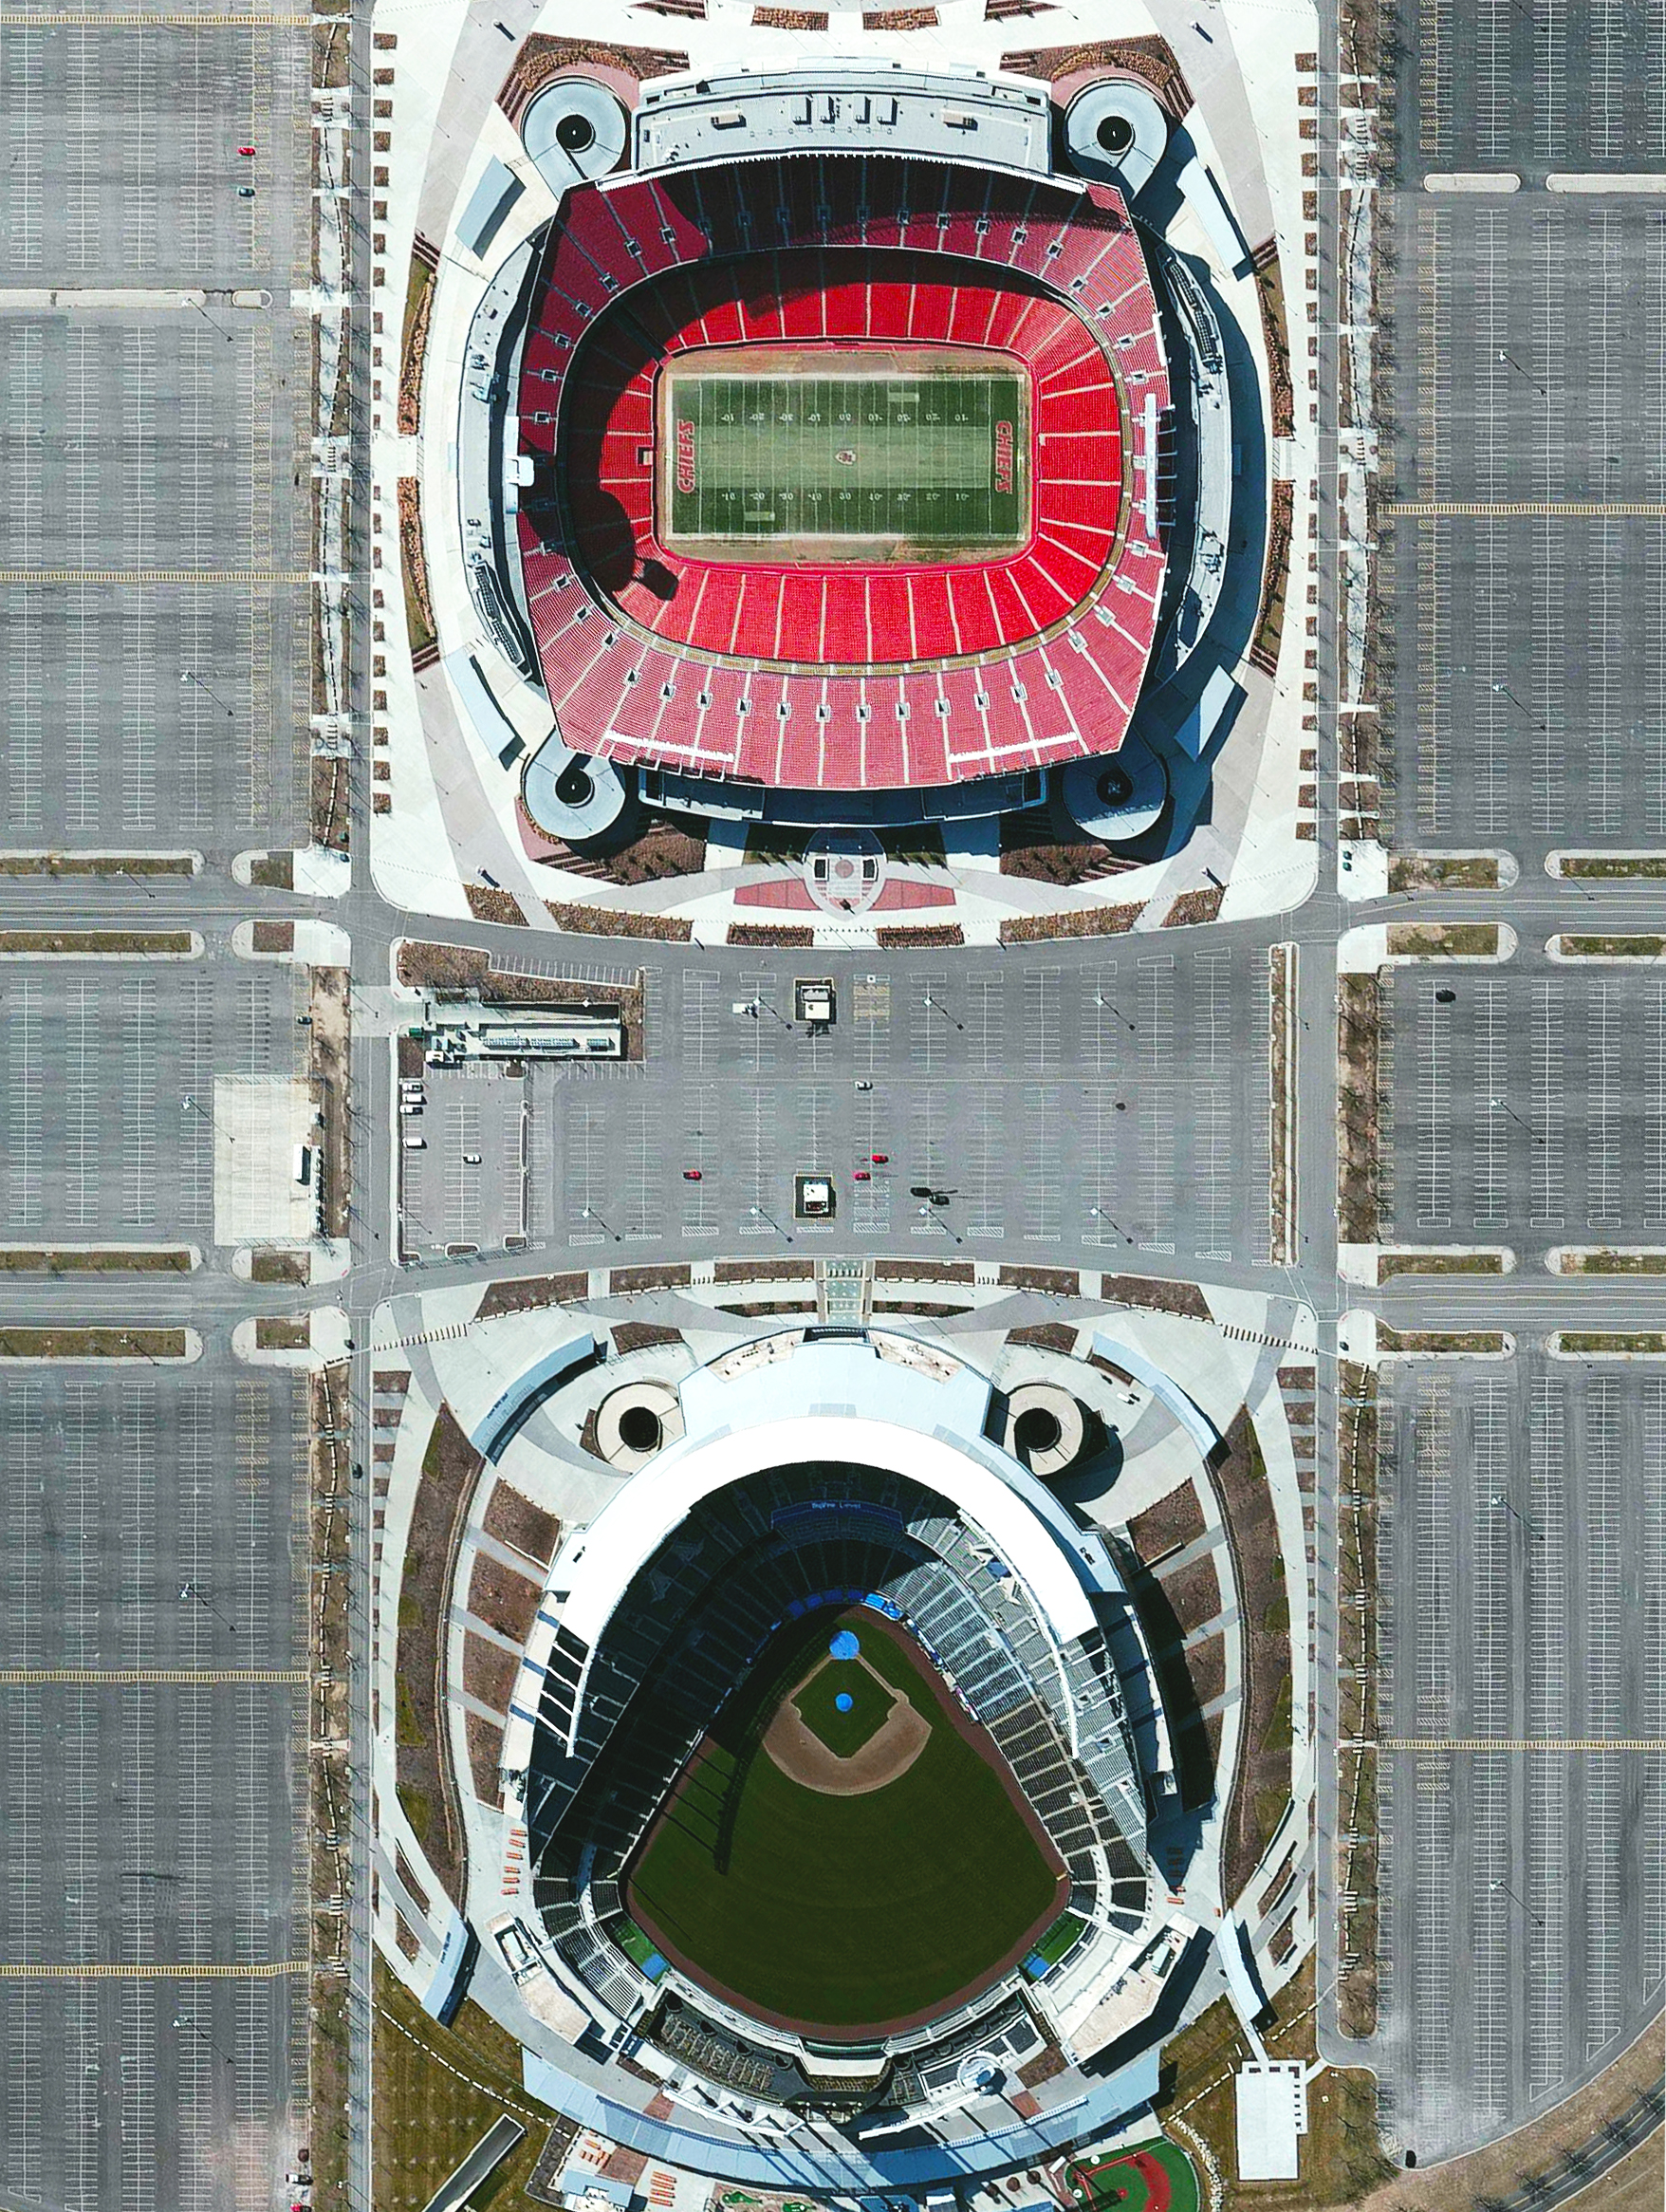 11/3/2015   Arrowhead Stadium  /  Kauffman Stadium   Kansas City, Missouri  39°3′5″N 94°28′50″W    Arrowhead Stadium and Kauffman Stadium are home to the Kansas City Chiefs (football) and Kansas City Royals (baseball). It was a great weekend for both teams as the Chiefs defeated the Detroit Lions and the Royals triumphed over the New York Mets to win the World Series. The combined seating capacity of the stadiums is 114,319.